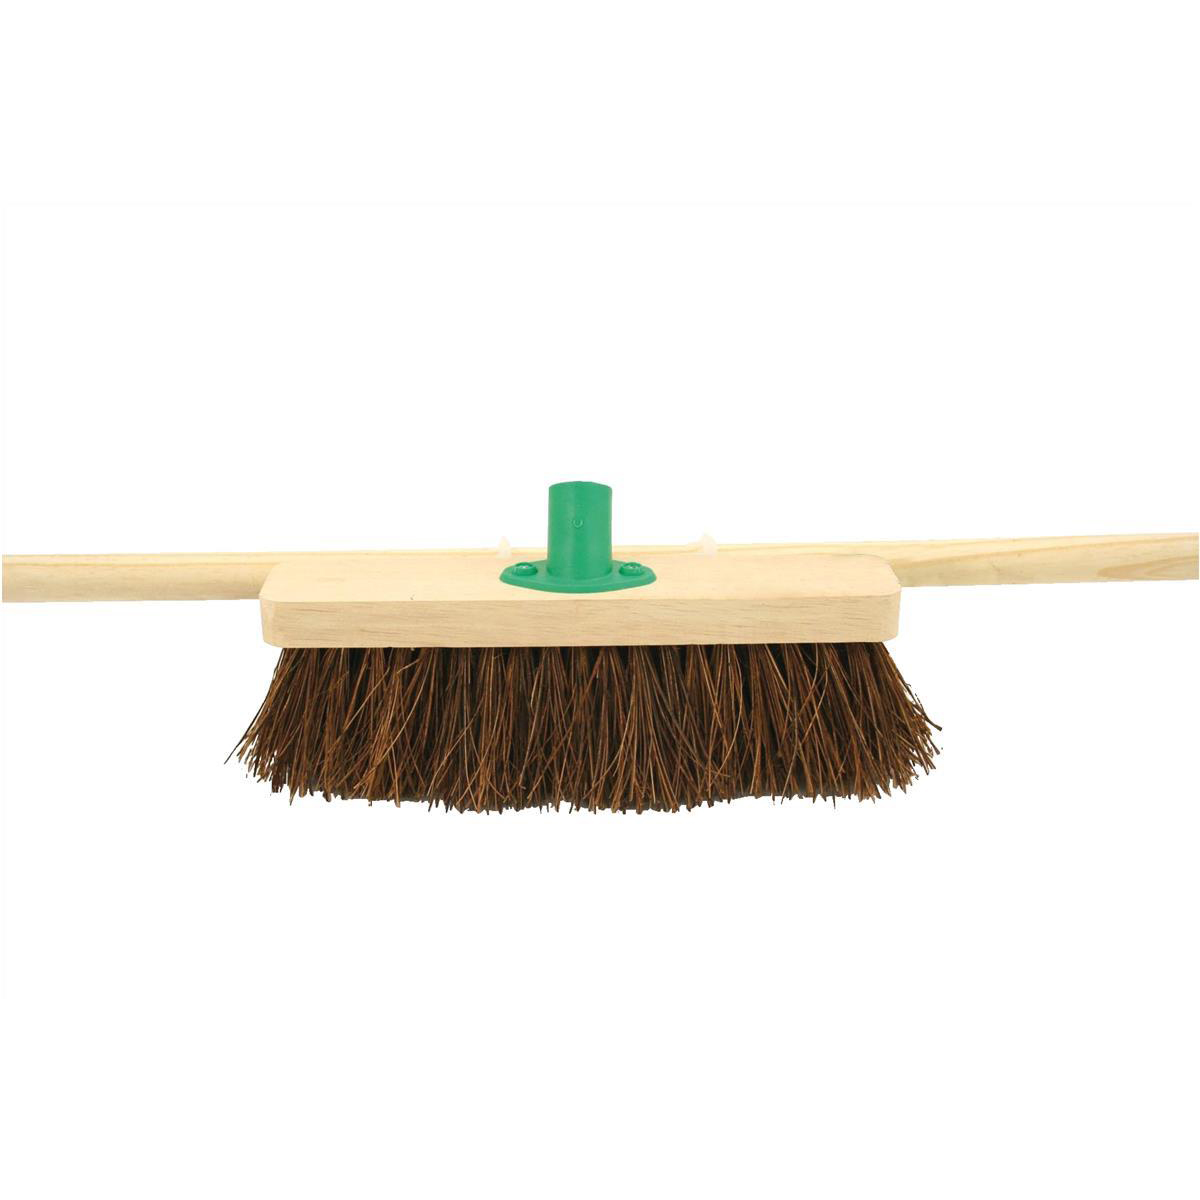 Brushes & Brooms Bentley 12inch Stiff Bassine Broom Head with Handle & Push fit Plastic Bracket Ref SPC/F10BKT/C4